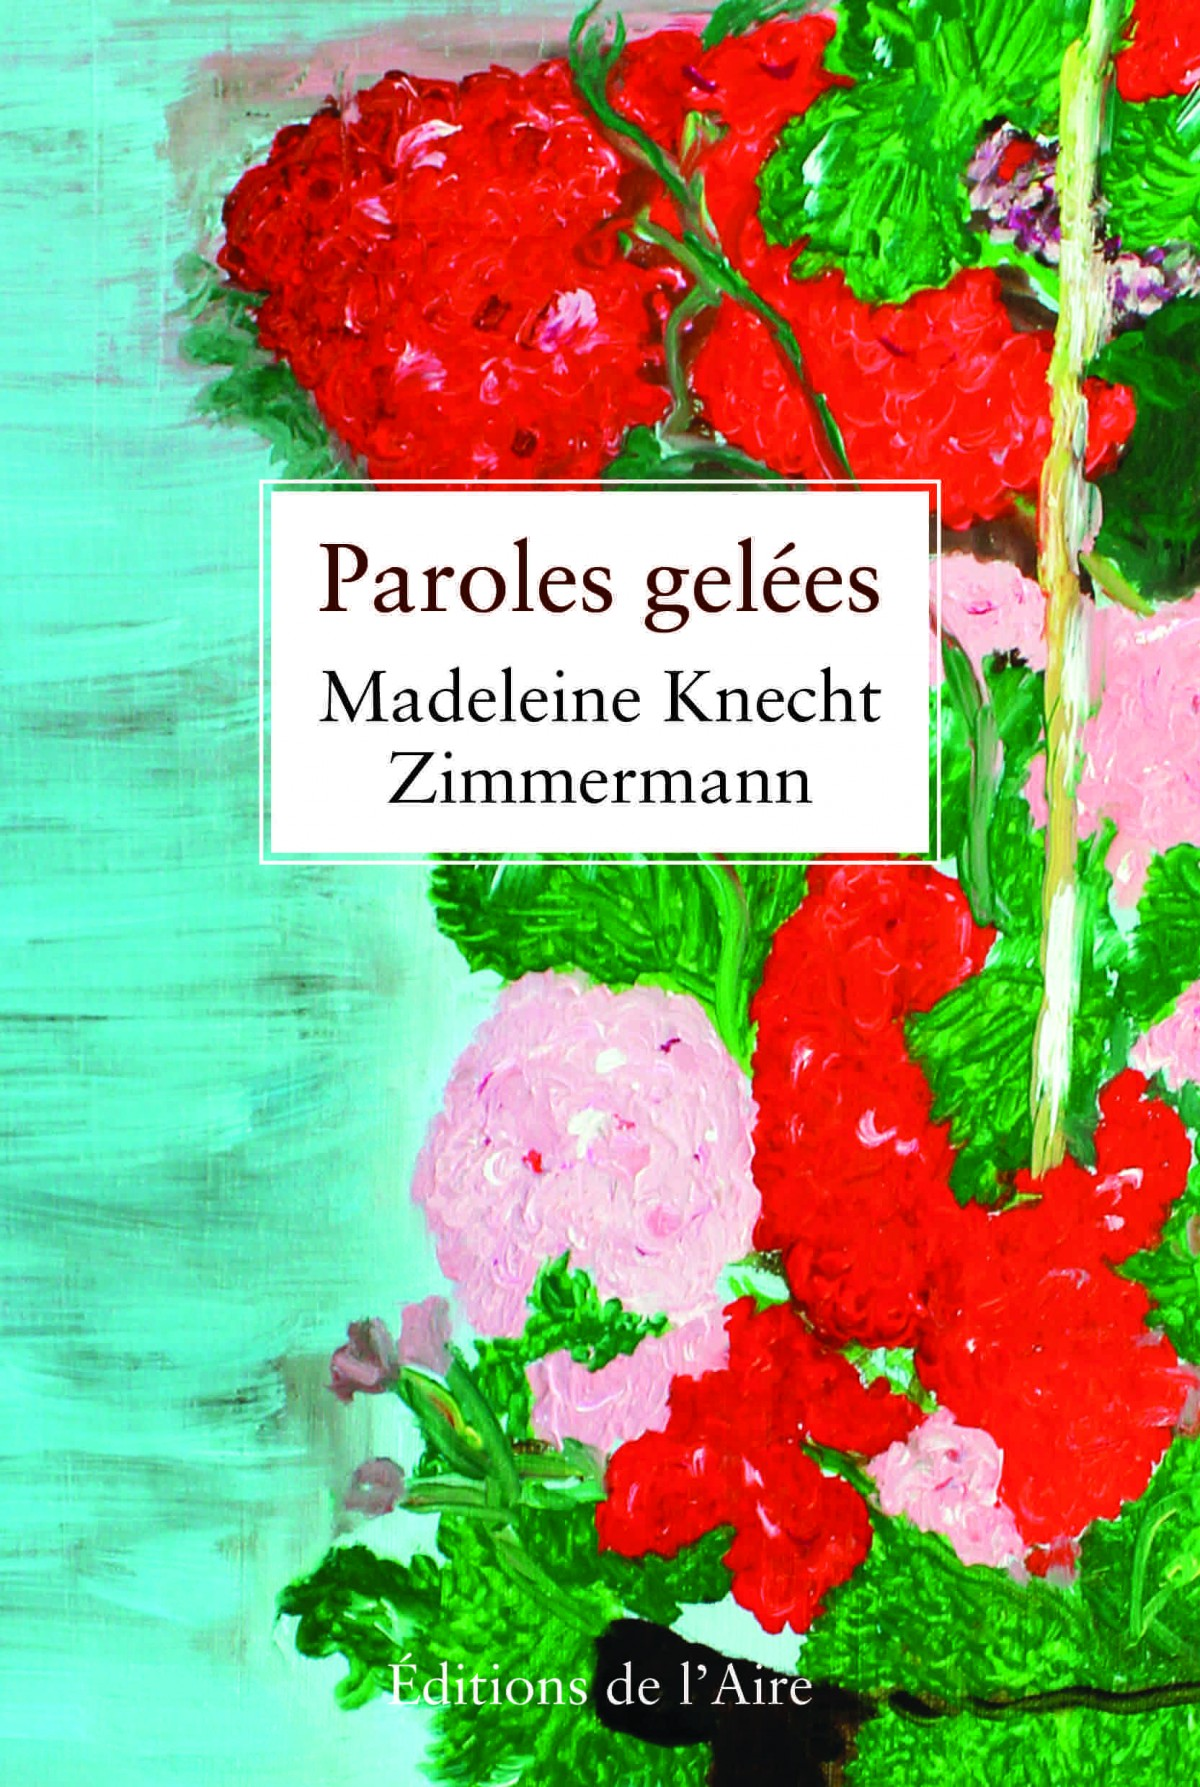 Paroles gelées, Knecht-Zimmermann, Madeleine